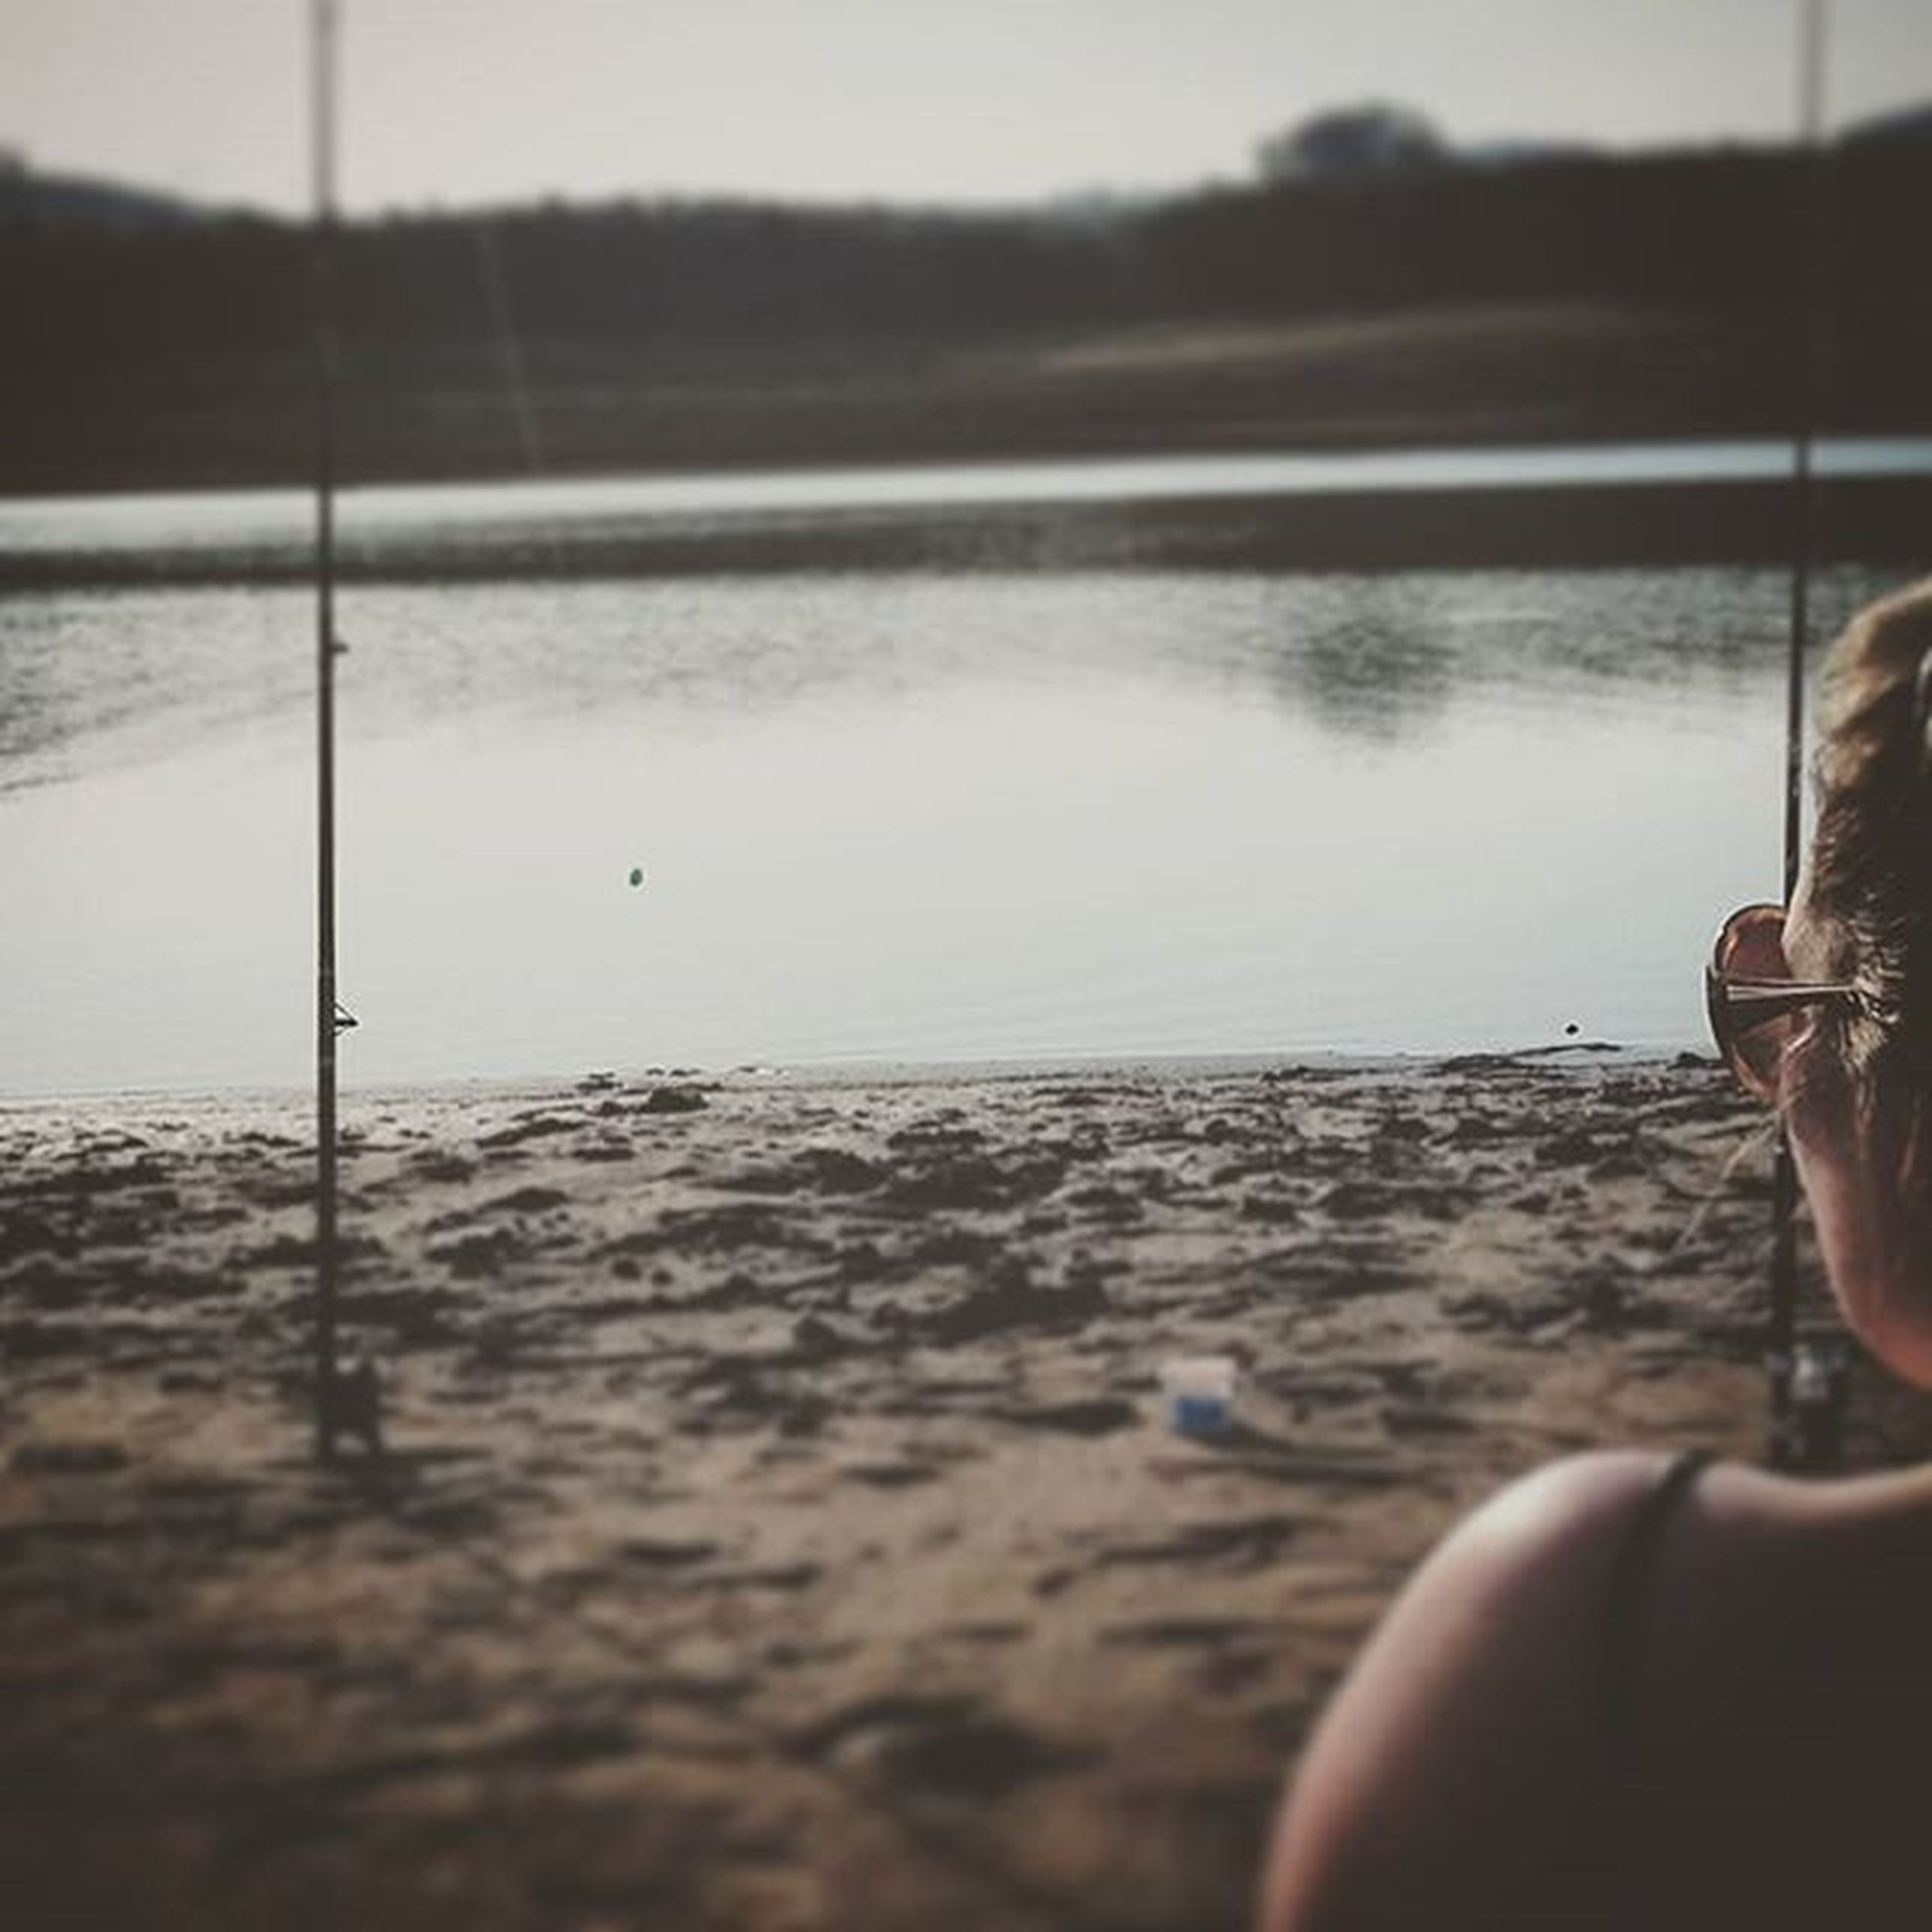 lifestyles, part of, leisure activity, water, focus on foreground, cropped, person, selective focus, men, low section, unrecognizable person, lake, personal perspective, reflection, close-up, nature